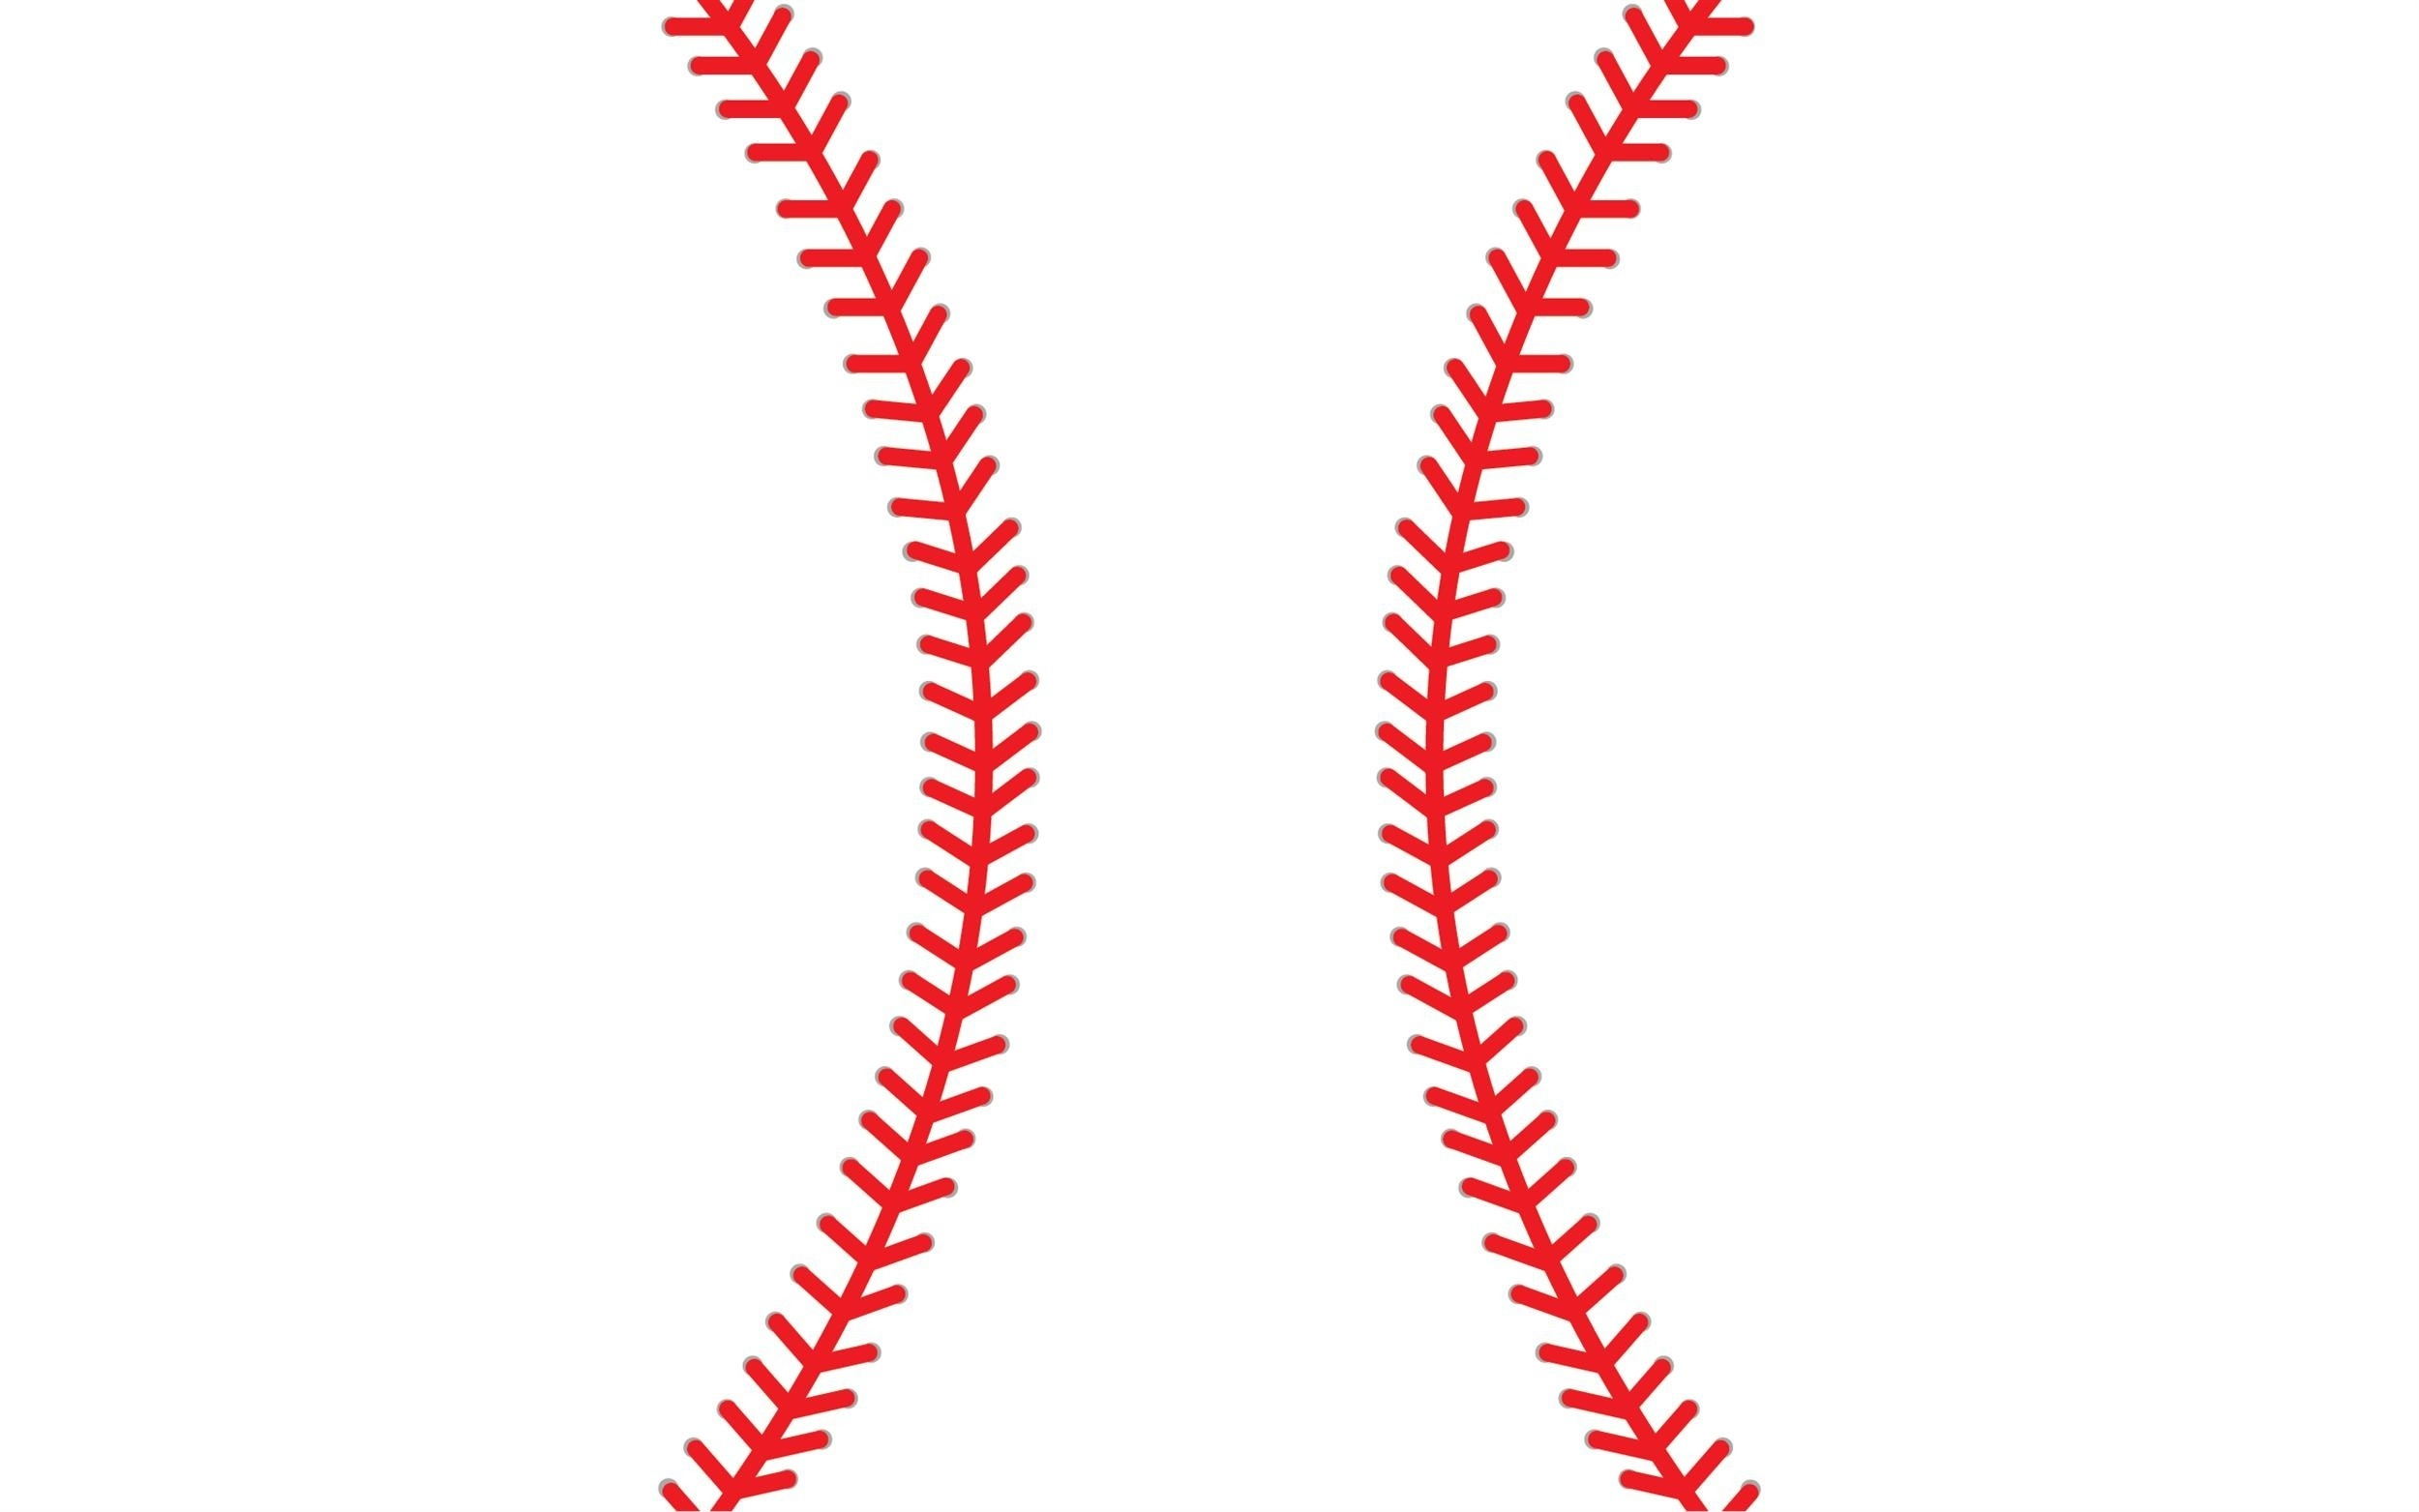 stitching vector images. Baseball clipart lace